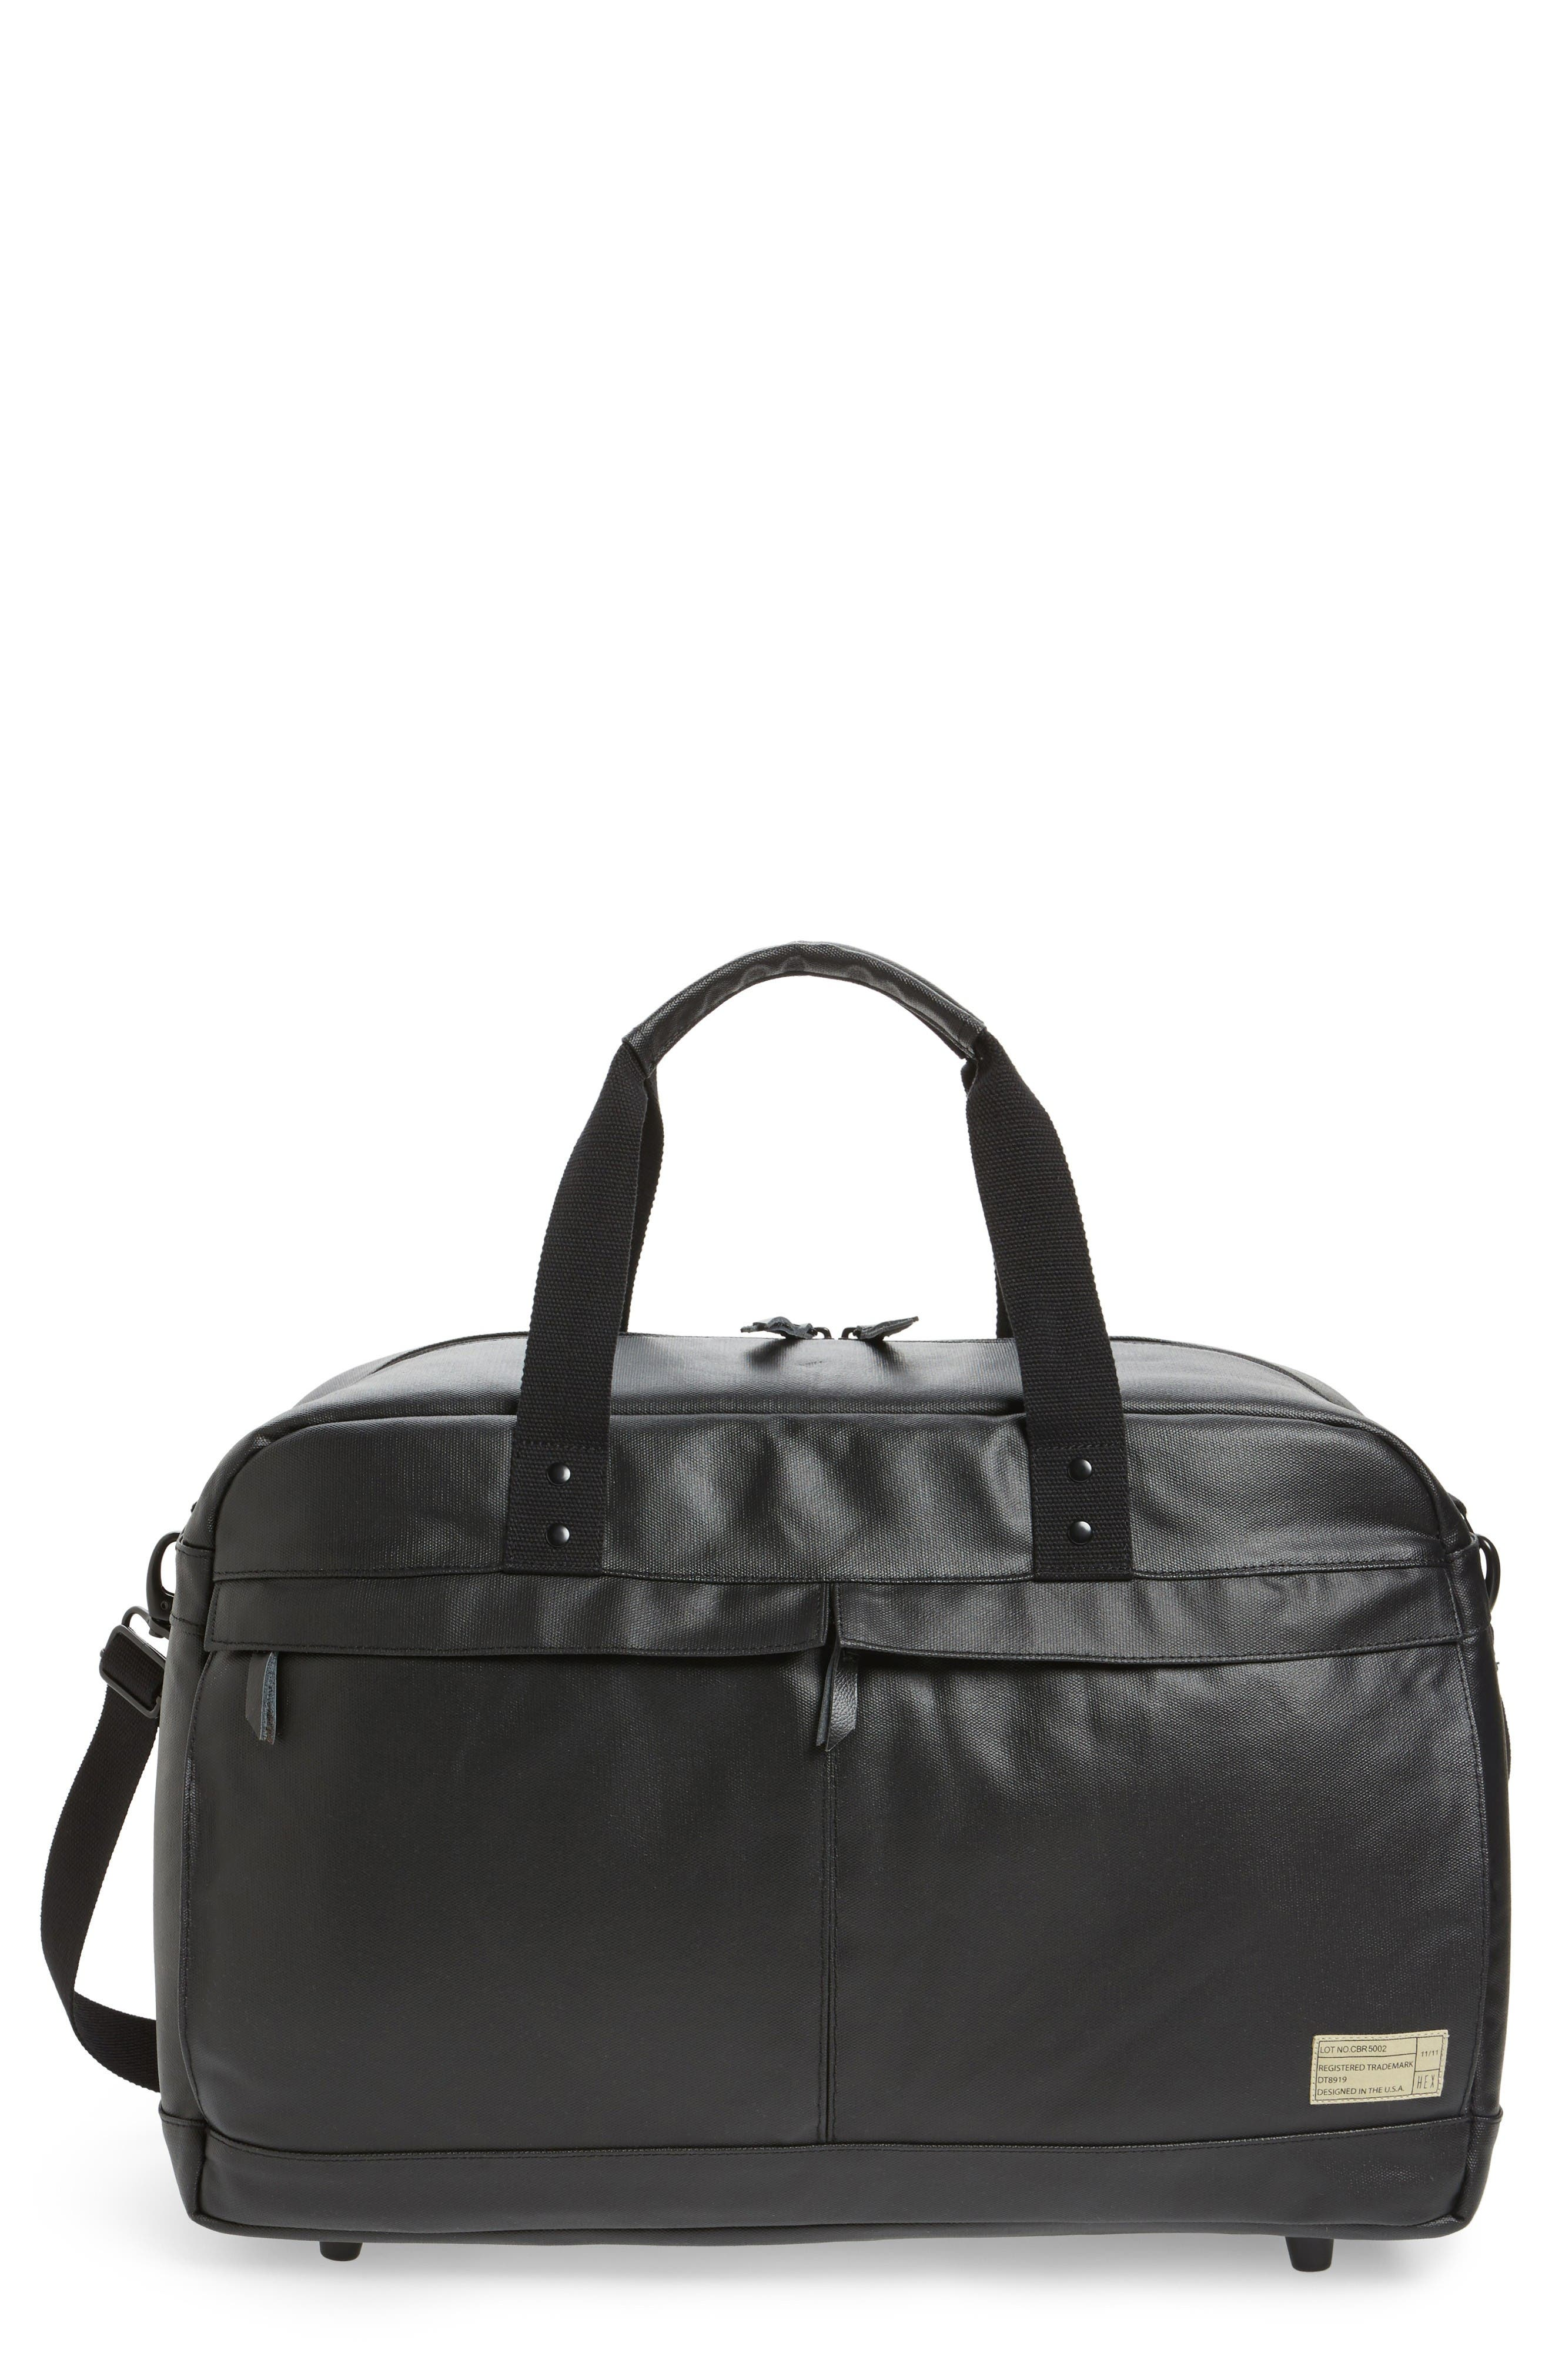 Alternate Image 1 Selected - HEX Calibre Duffel Bag